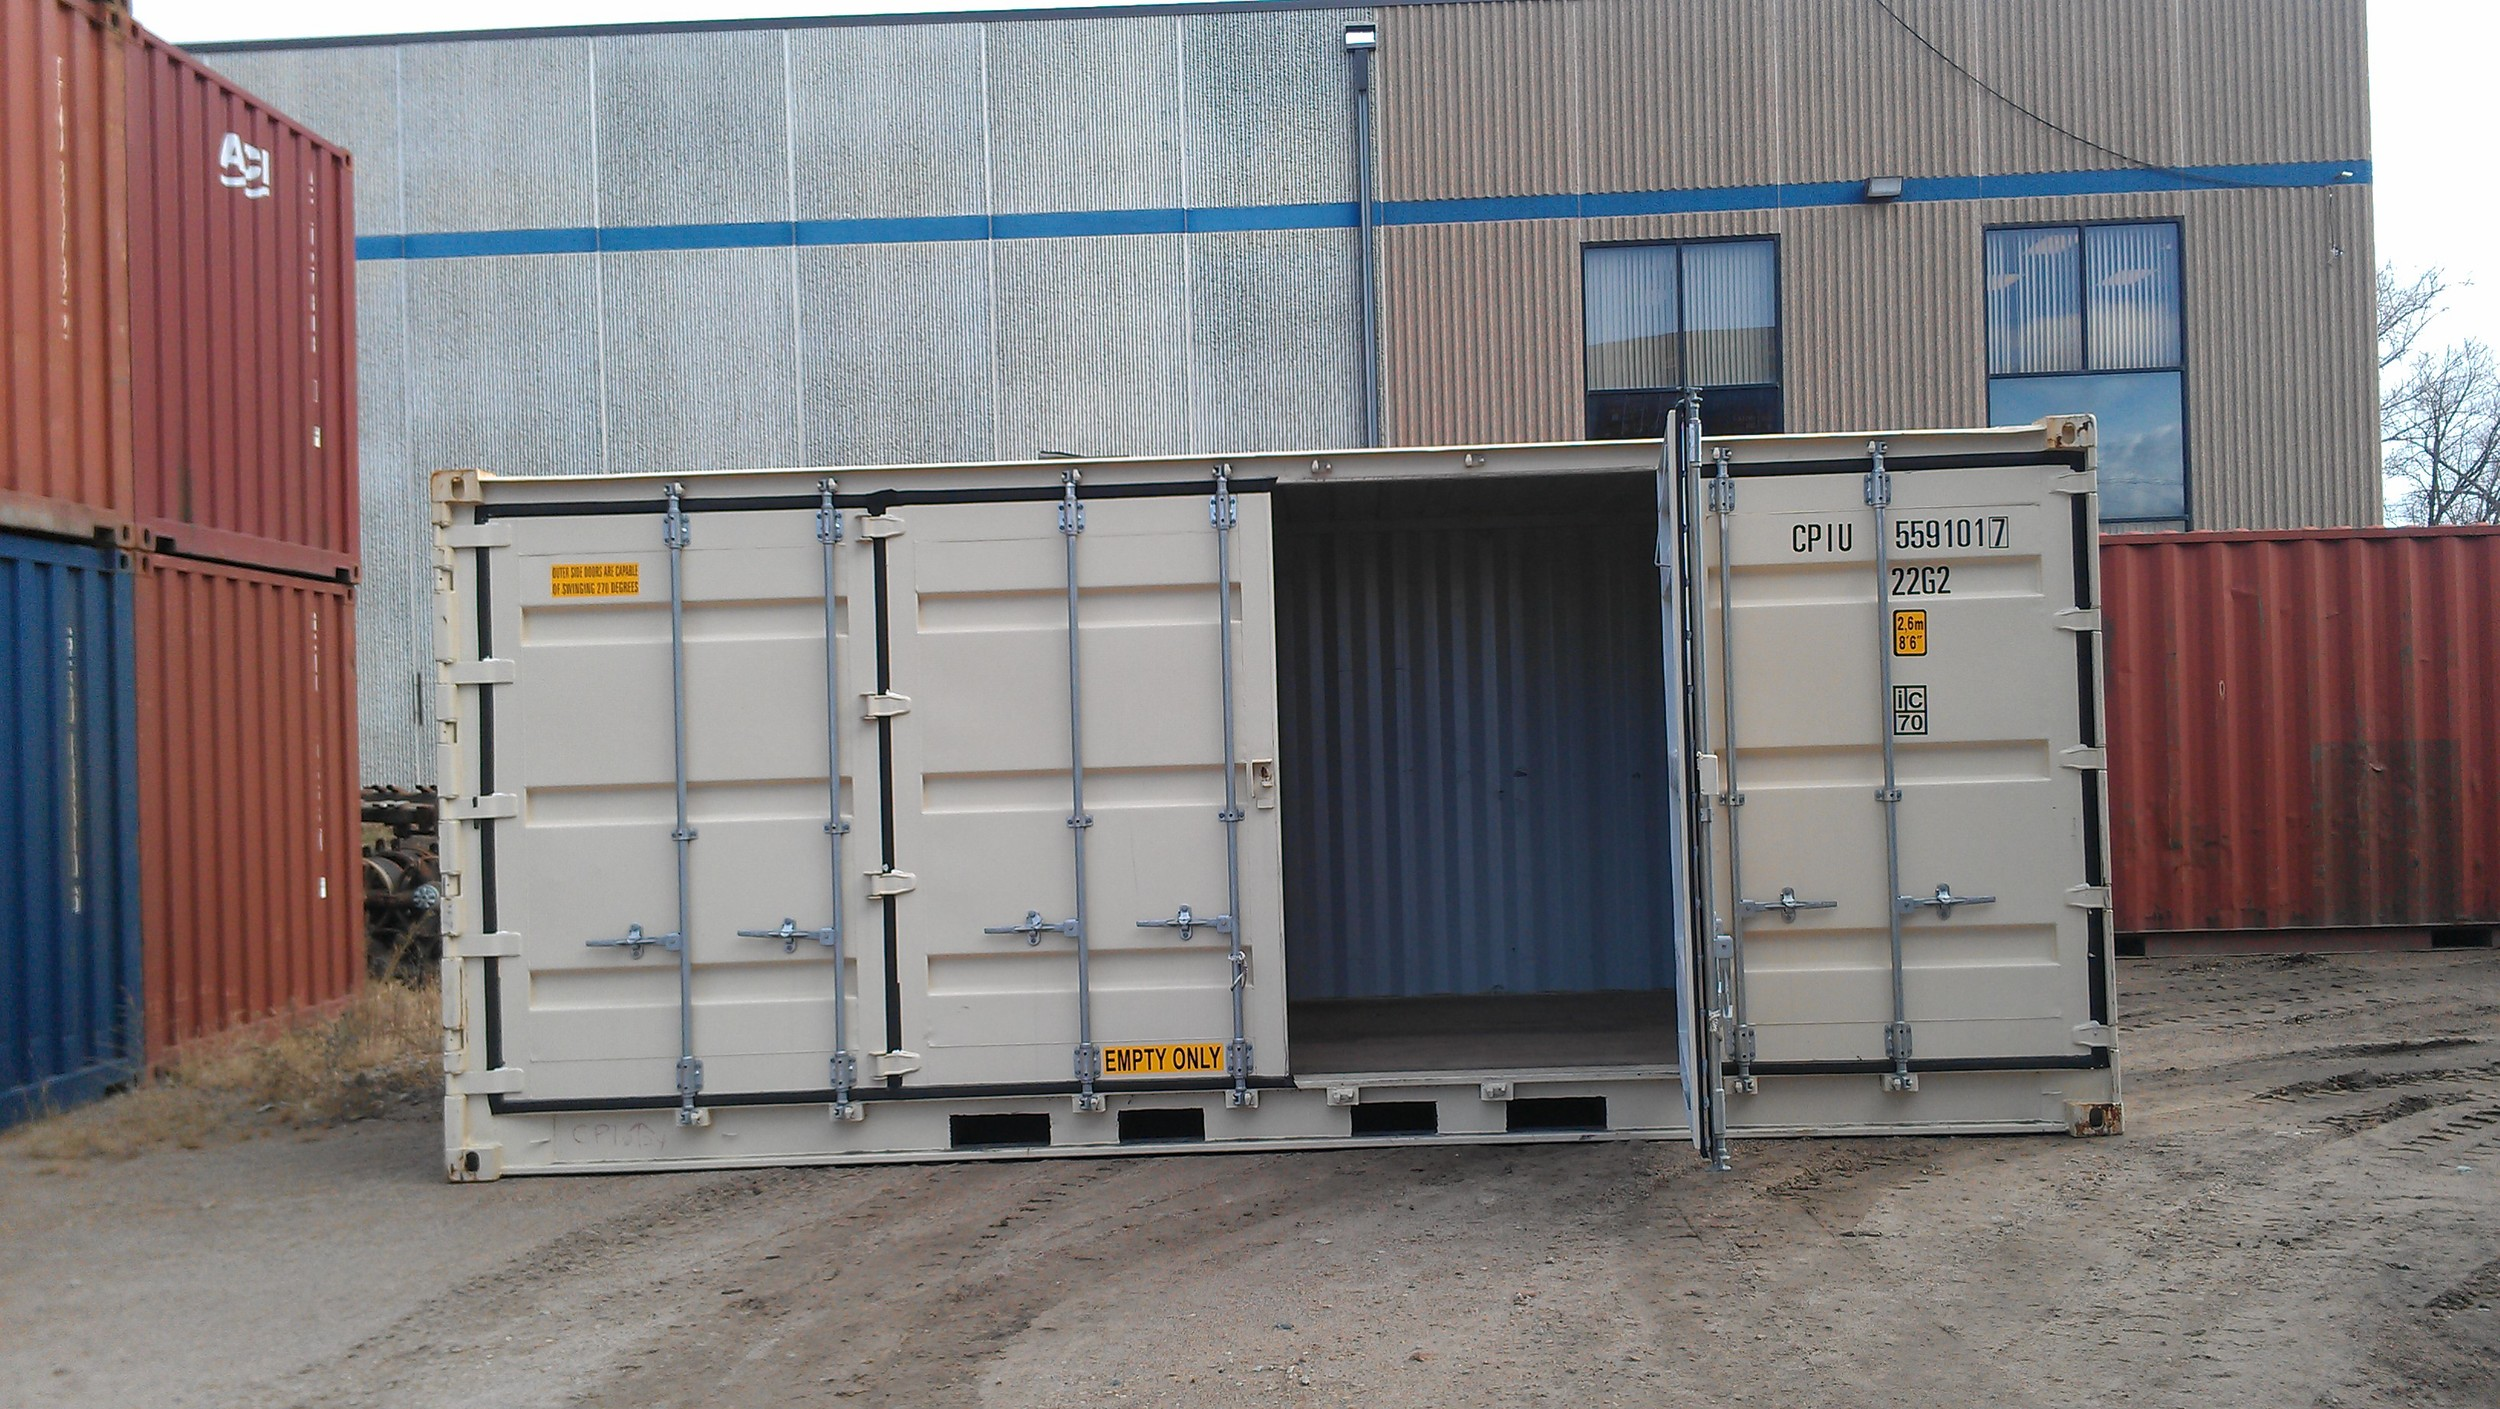 Le Meilleur Specialty Shipping Containers — Shipping Containers At A Ce Mois Ci